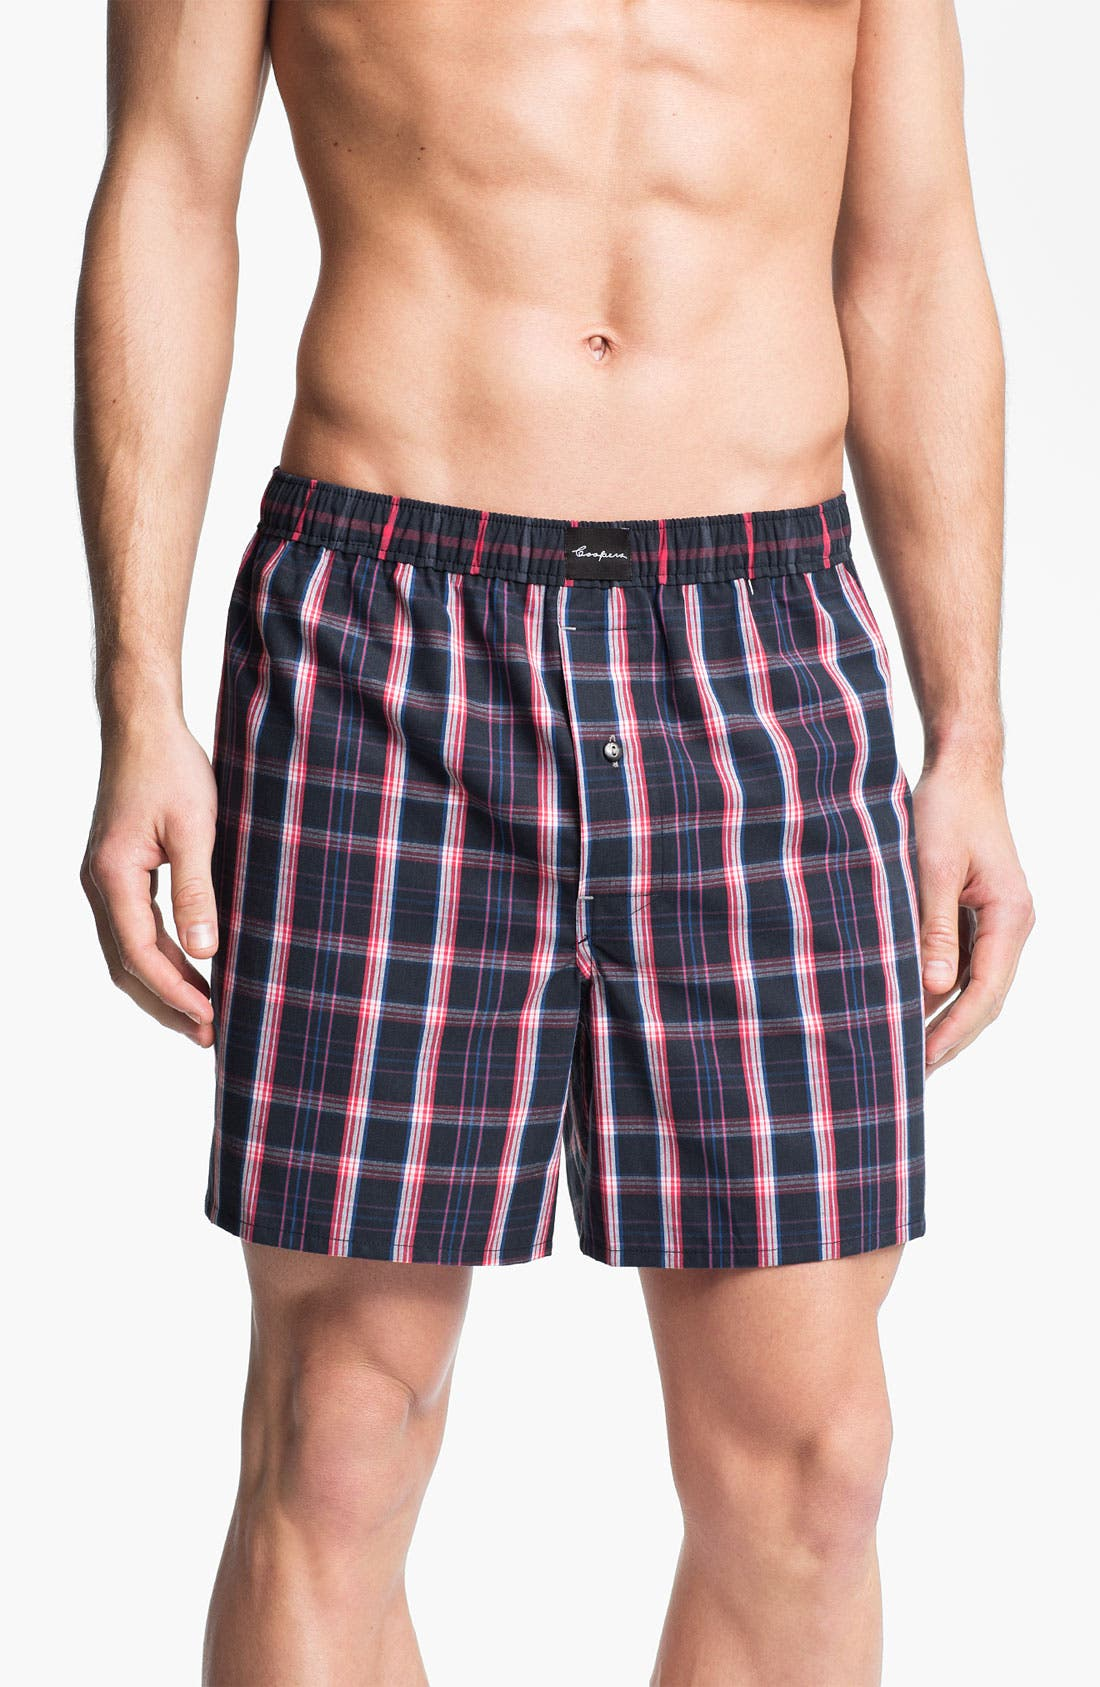 Alternate Image 1 Selected - Coopers by Jockey® Woven Boxer Shorts